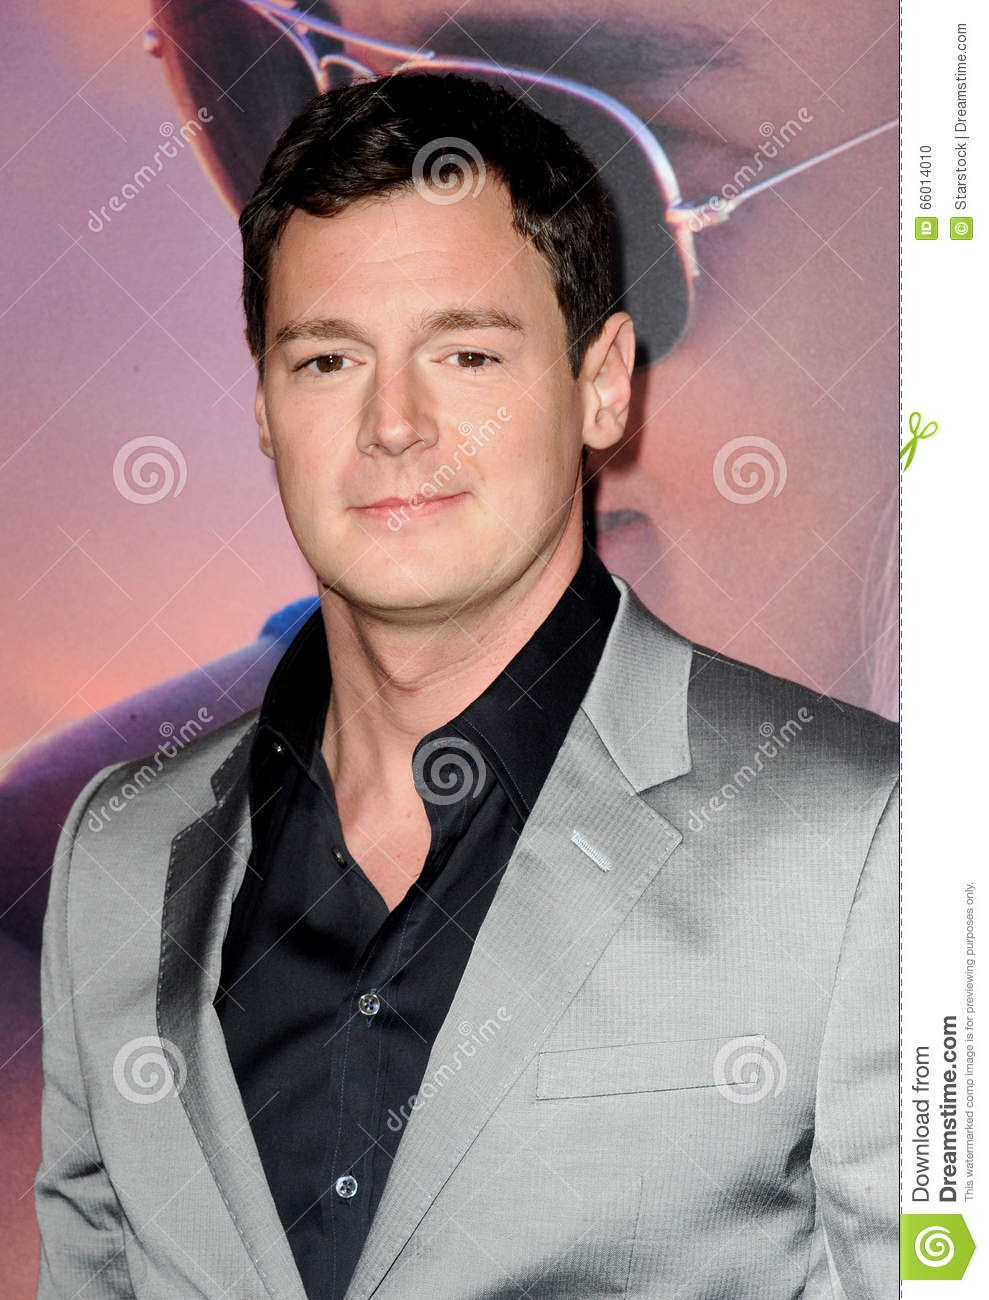 benjamin walker net worthbenjamin walker davis, benjamin walker and teresa palmer, benjamin walker the actor, benjamin walker movies, benjamin walker insta, benjamin walker imdb, benjamin walker twitter, benjamin walker intel, benjamin walker net worth, benjamin walker instagram, benjamin walker height, benjamin walker facebook, benjamin walker stand up, benjamin walker homefront, benjamin walker, benjamin walker the choice, benjamin walker american psycho, benjamin walker mamie gummer, benjamin walker and kaya scodelario wedding, benjamin walker interview